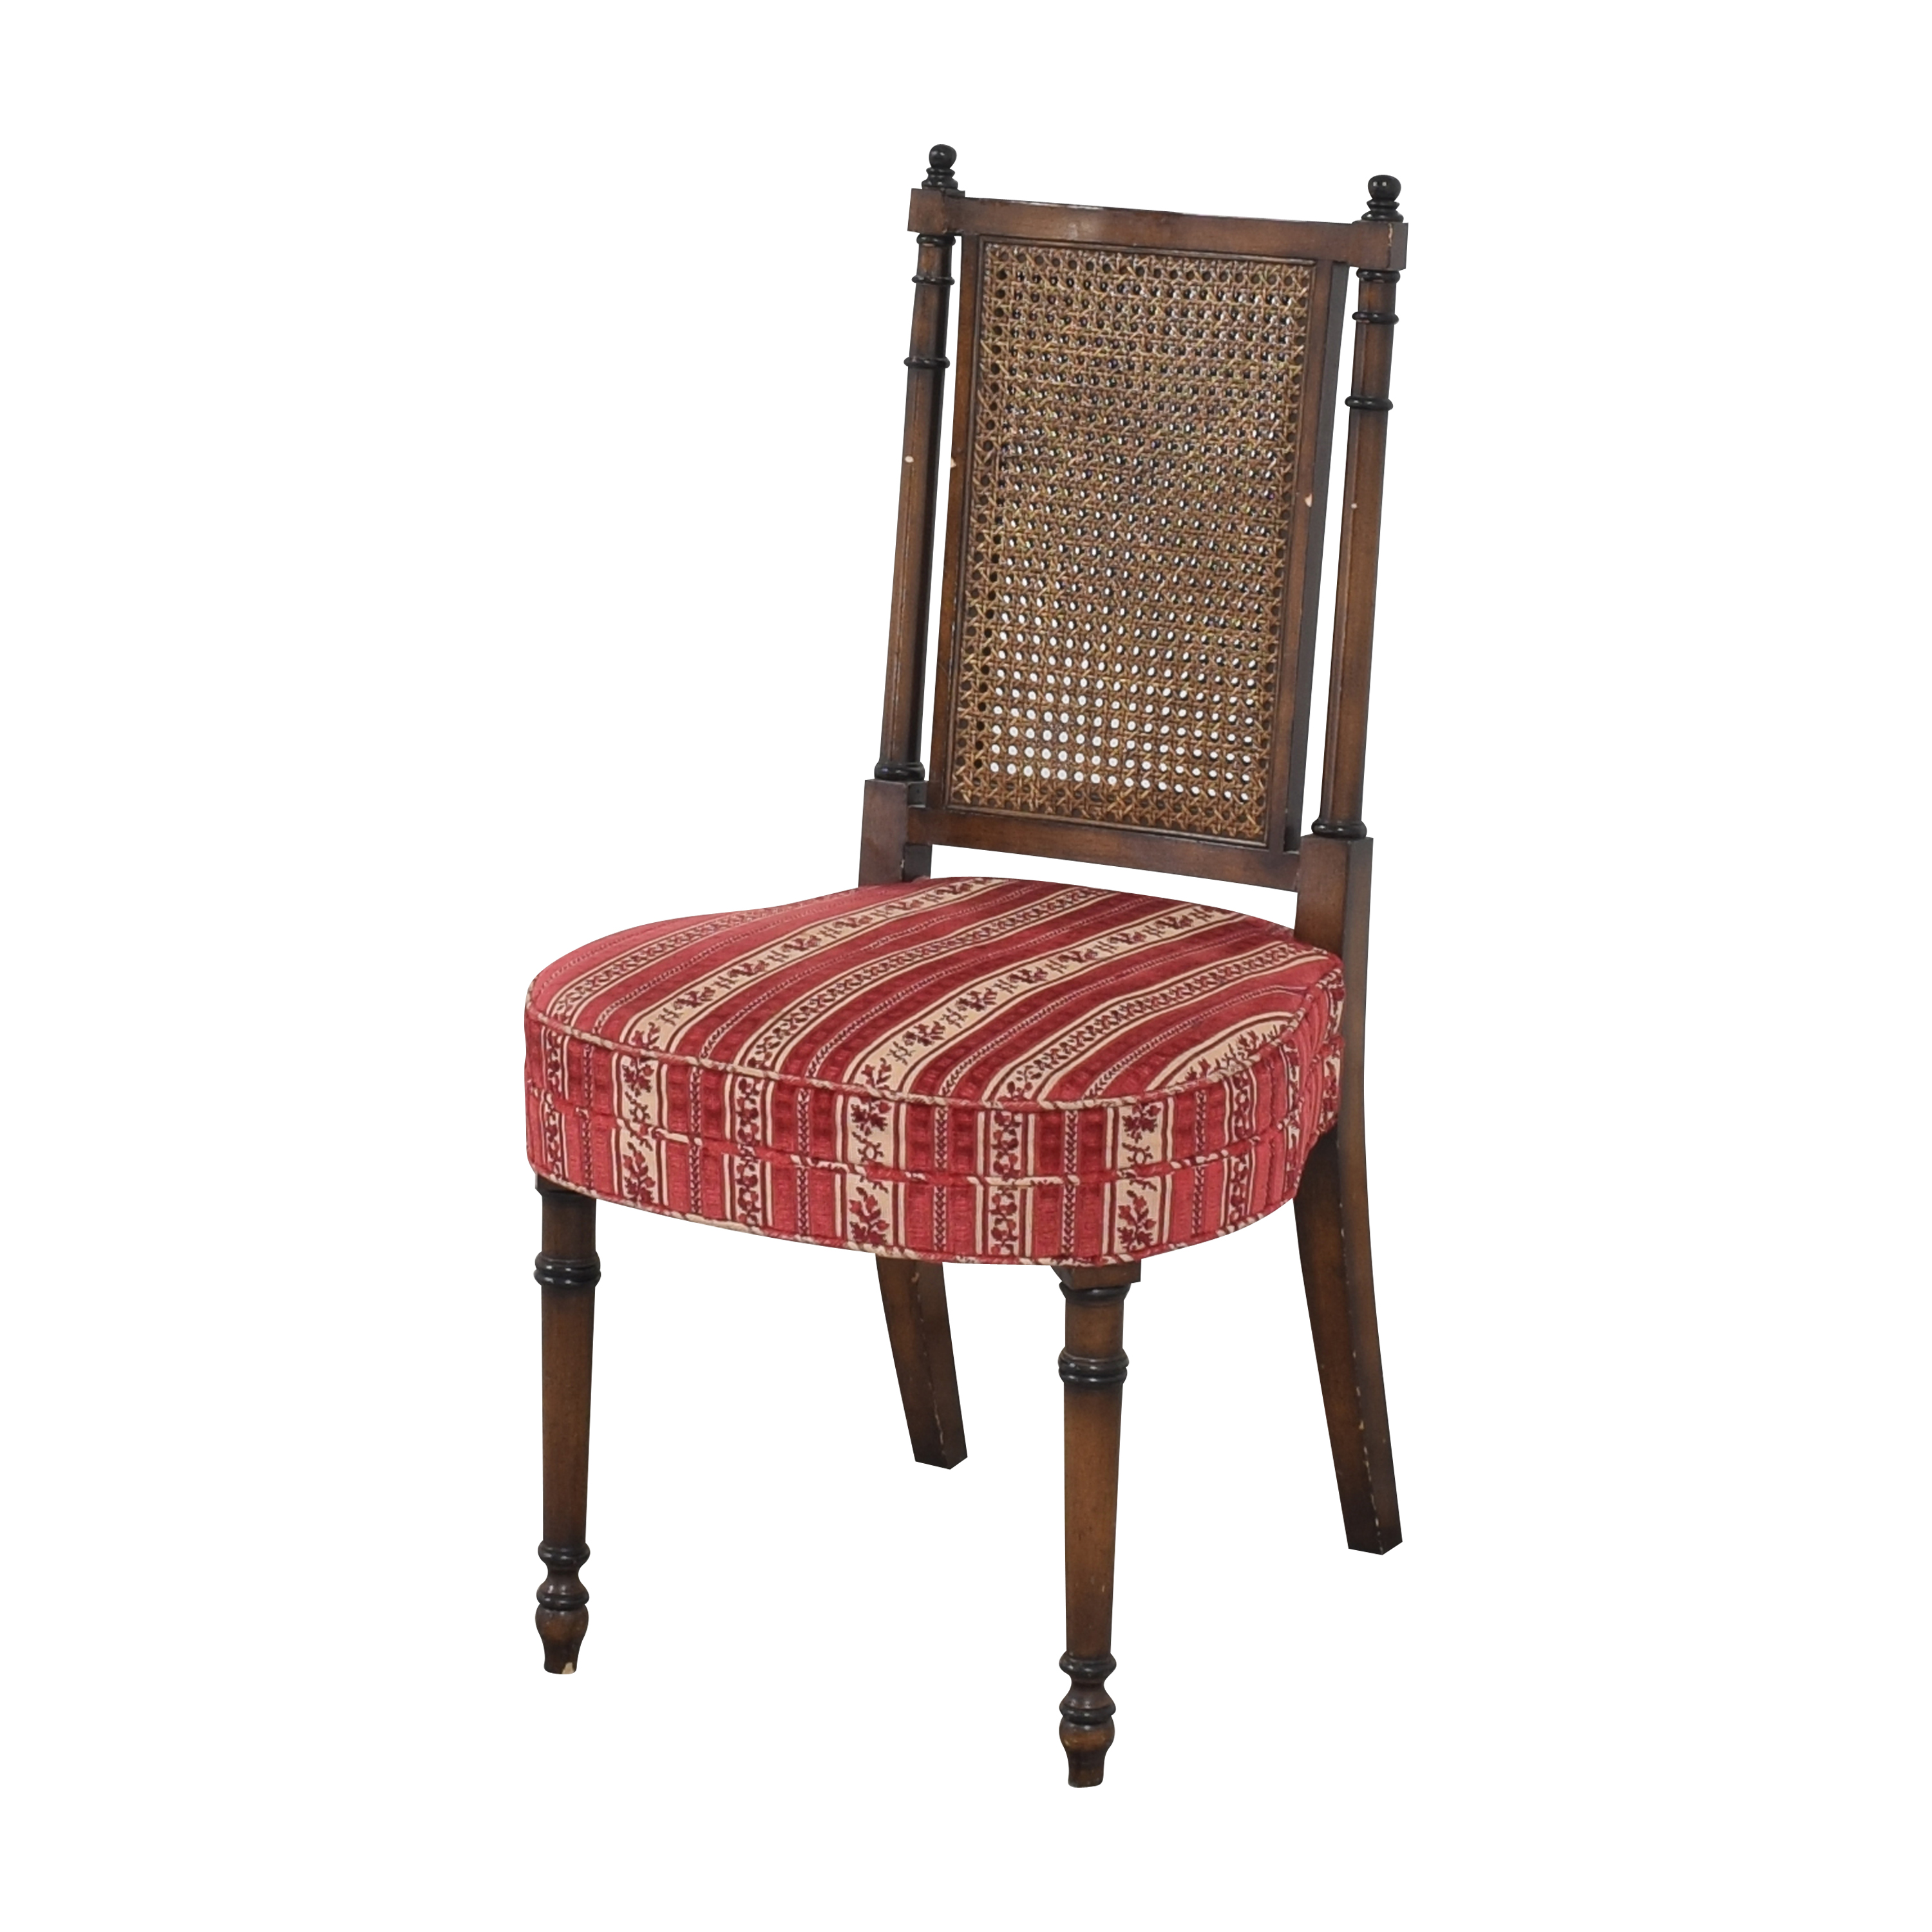 Vintage Upholstered Dining Chairs second hand